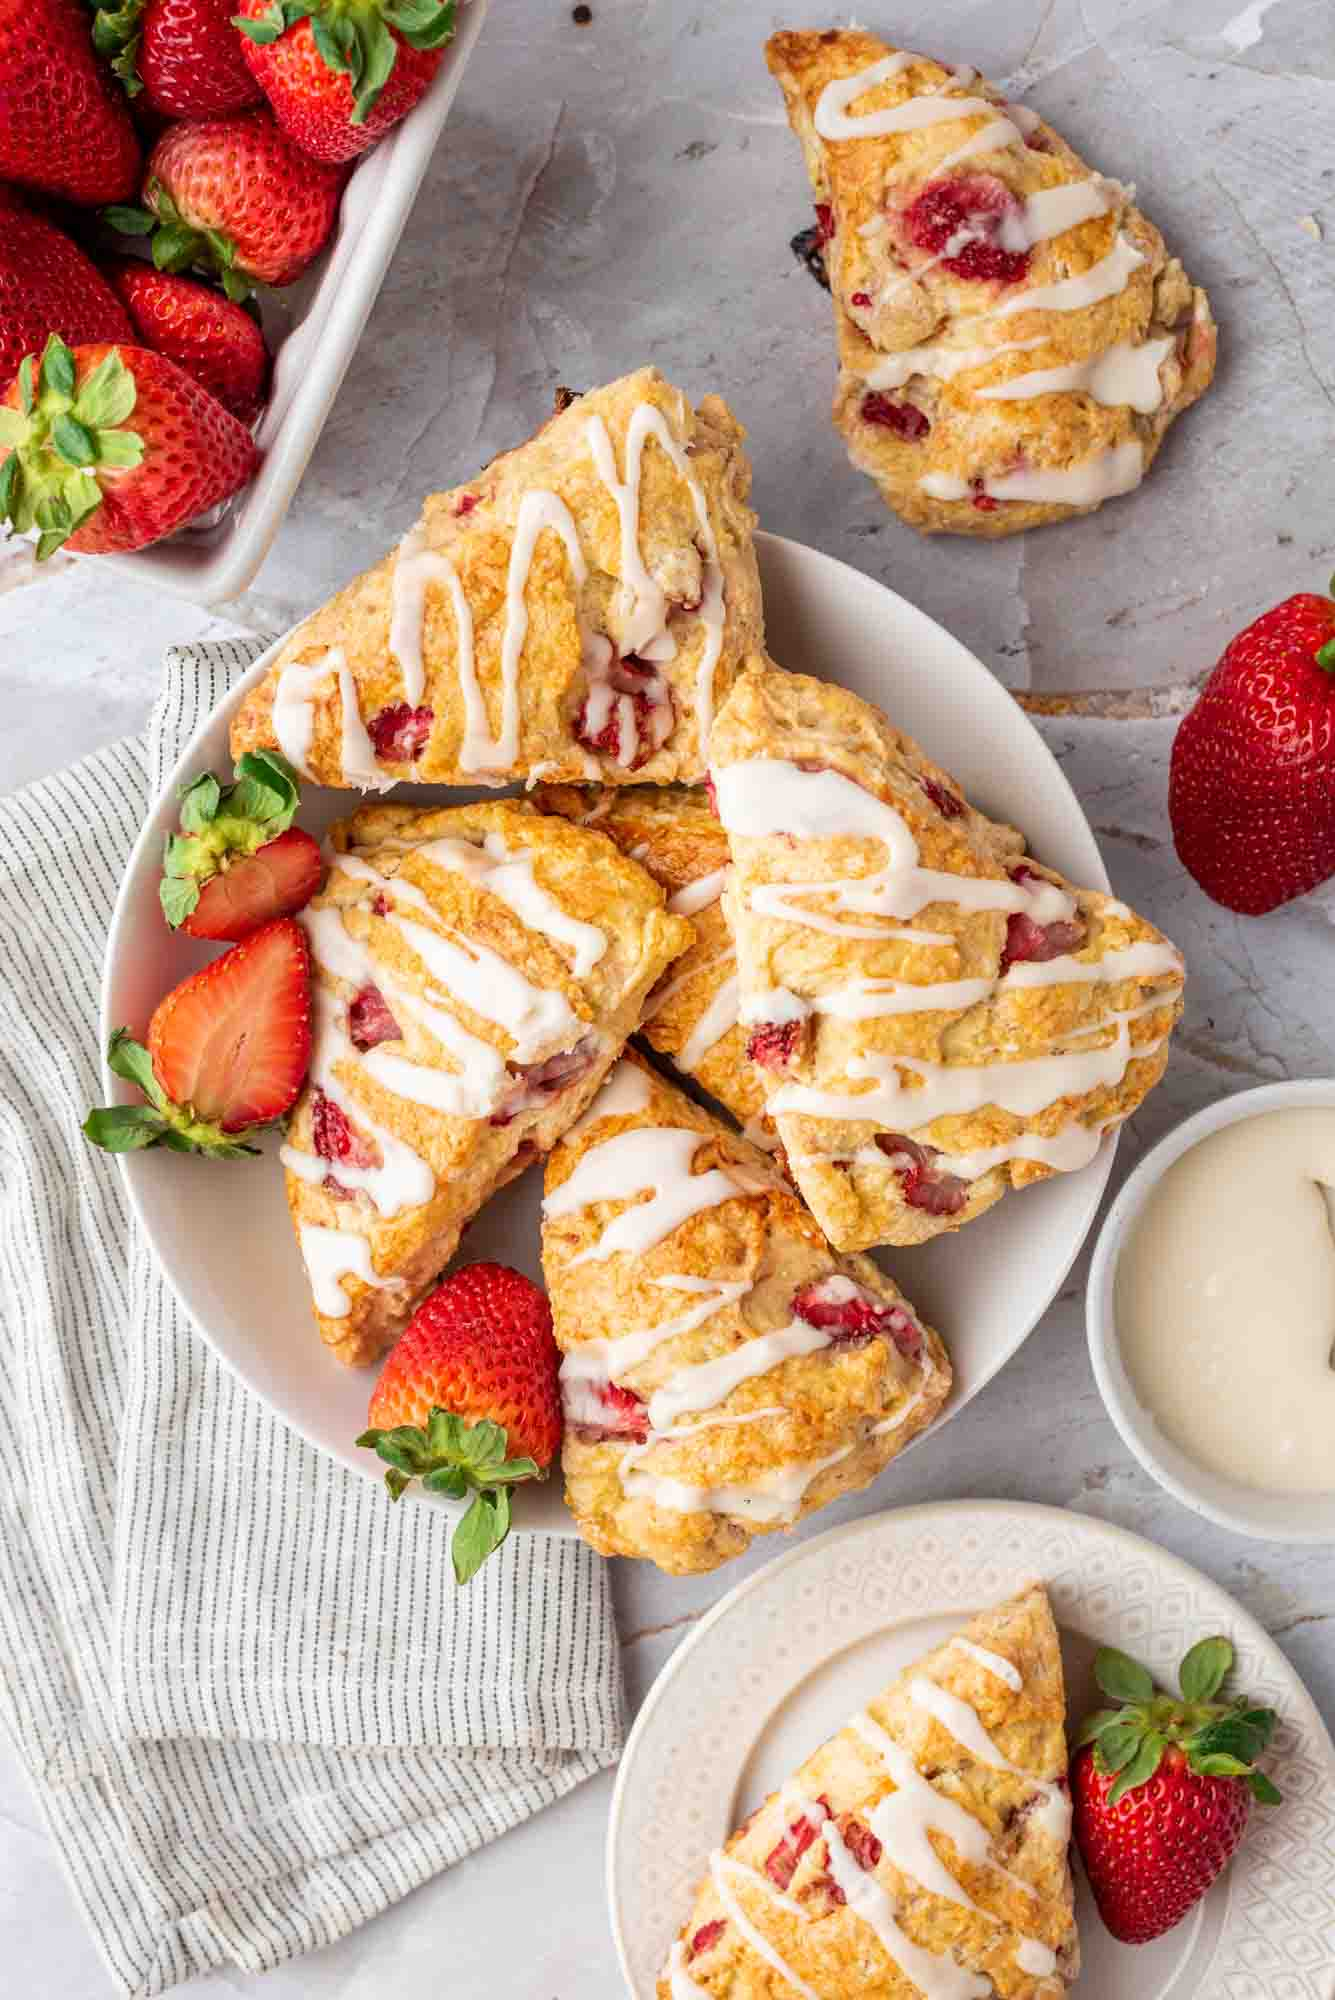 Strawberry Scones on a plate, and fresh strawberries scattered around them